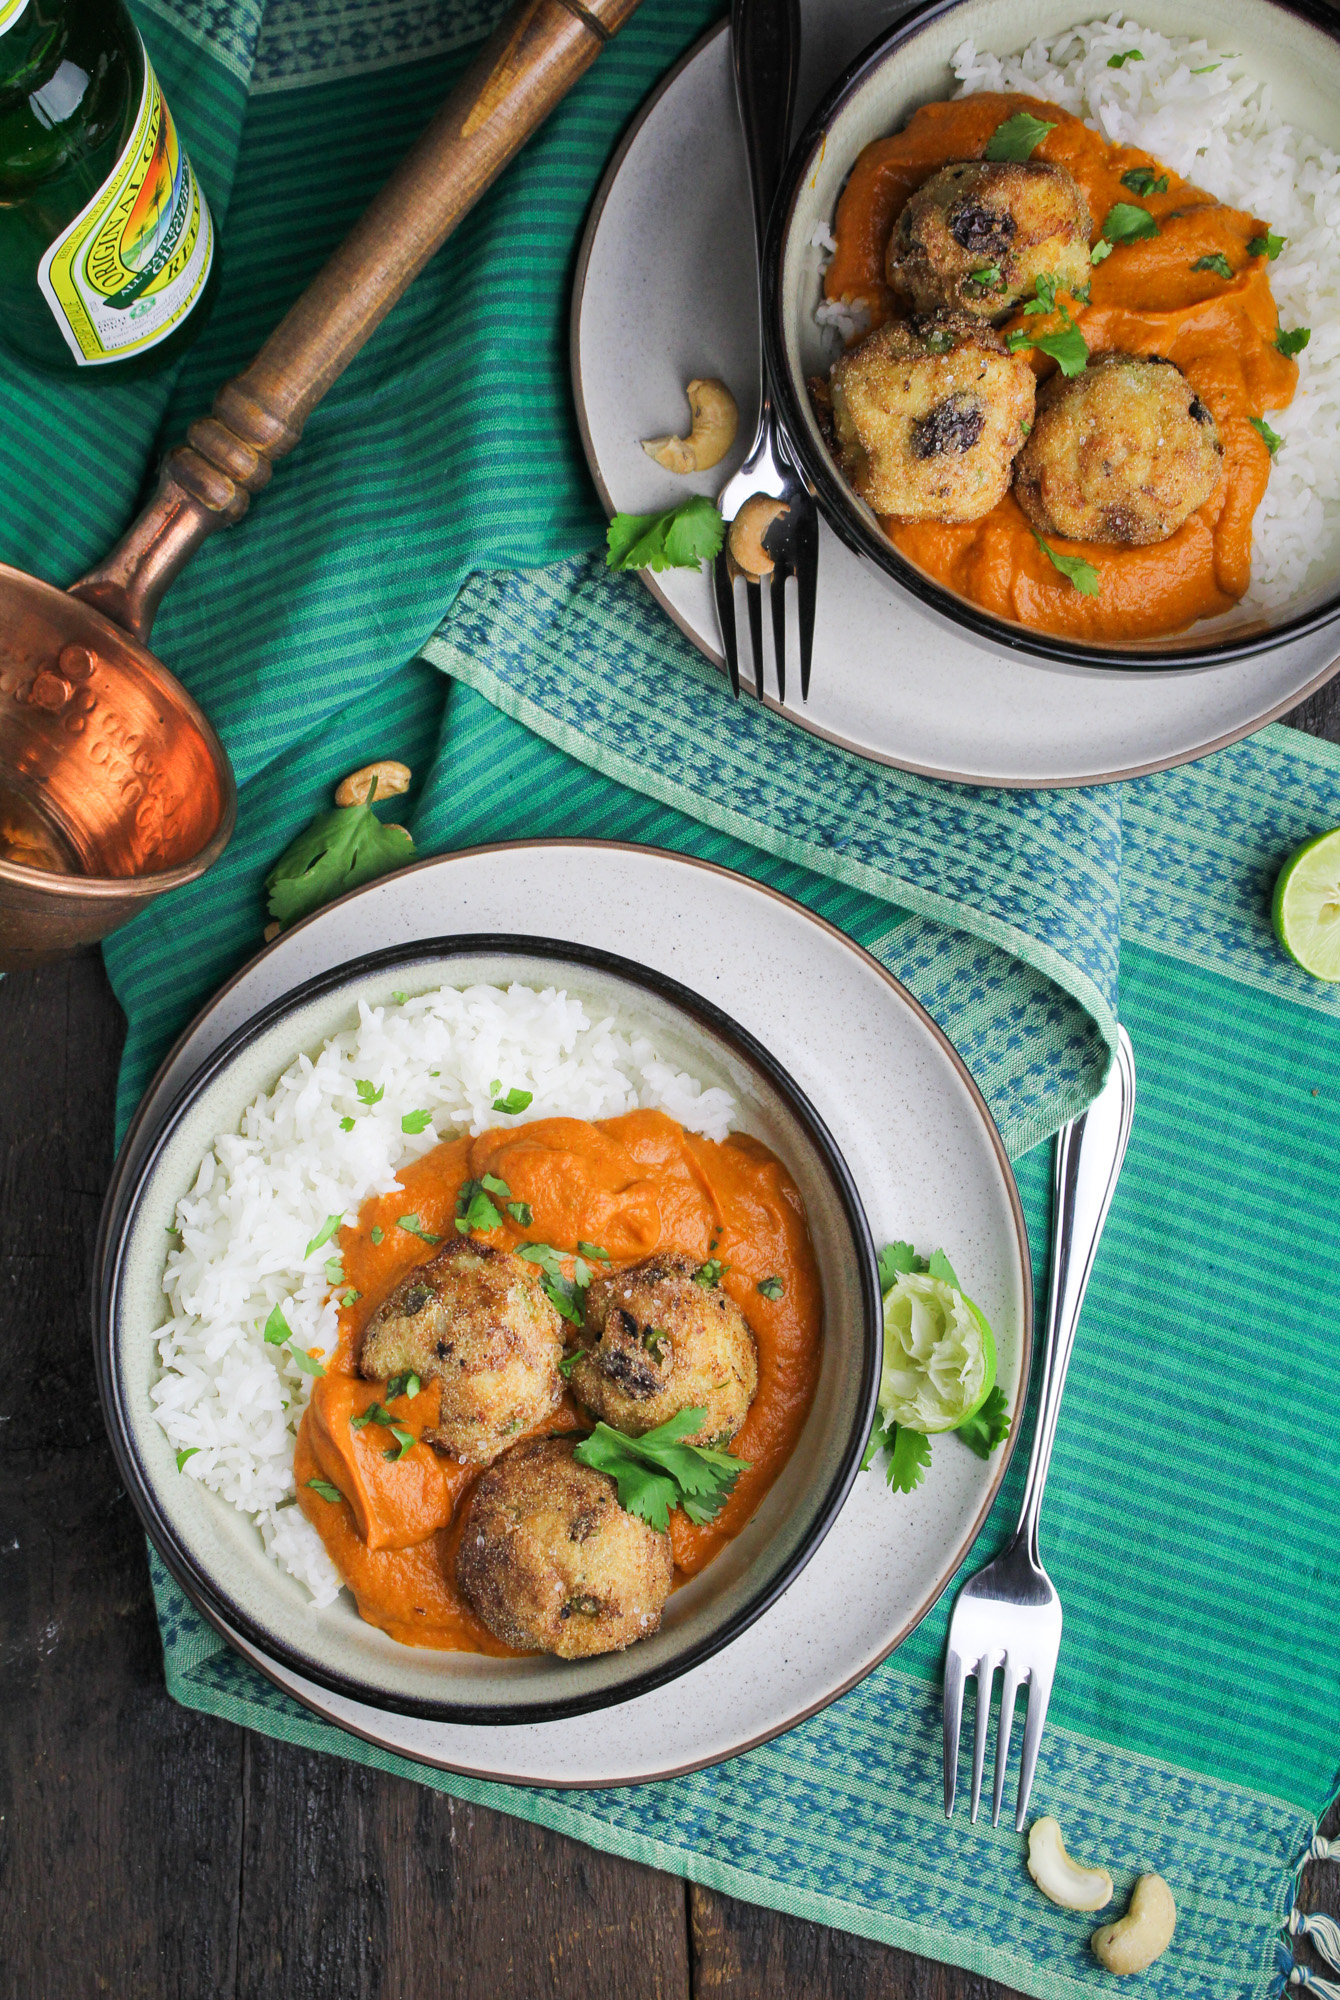 Malai Kofta - Vegetarian Potato-Paneer Balls in Tomato Cream Curry ...